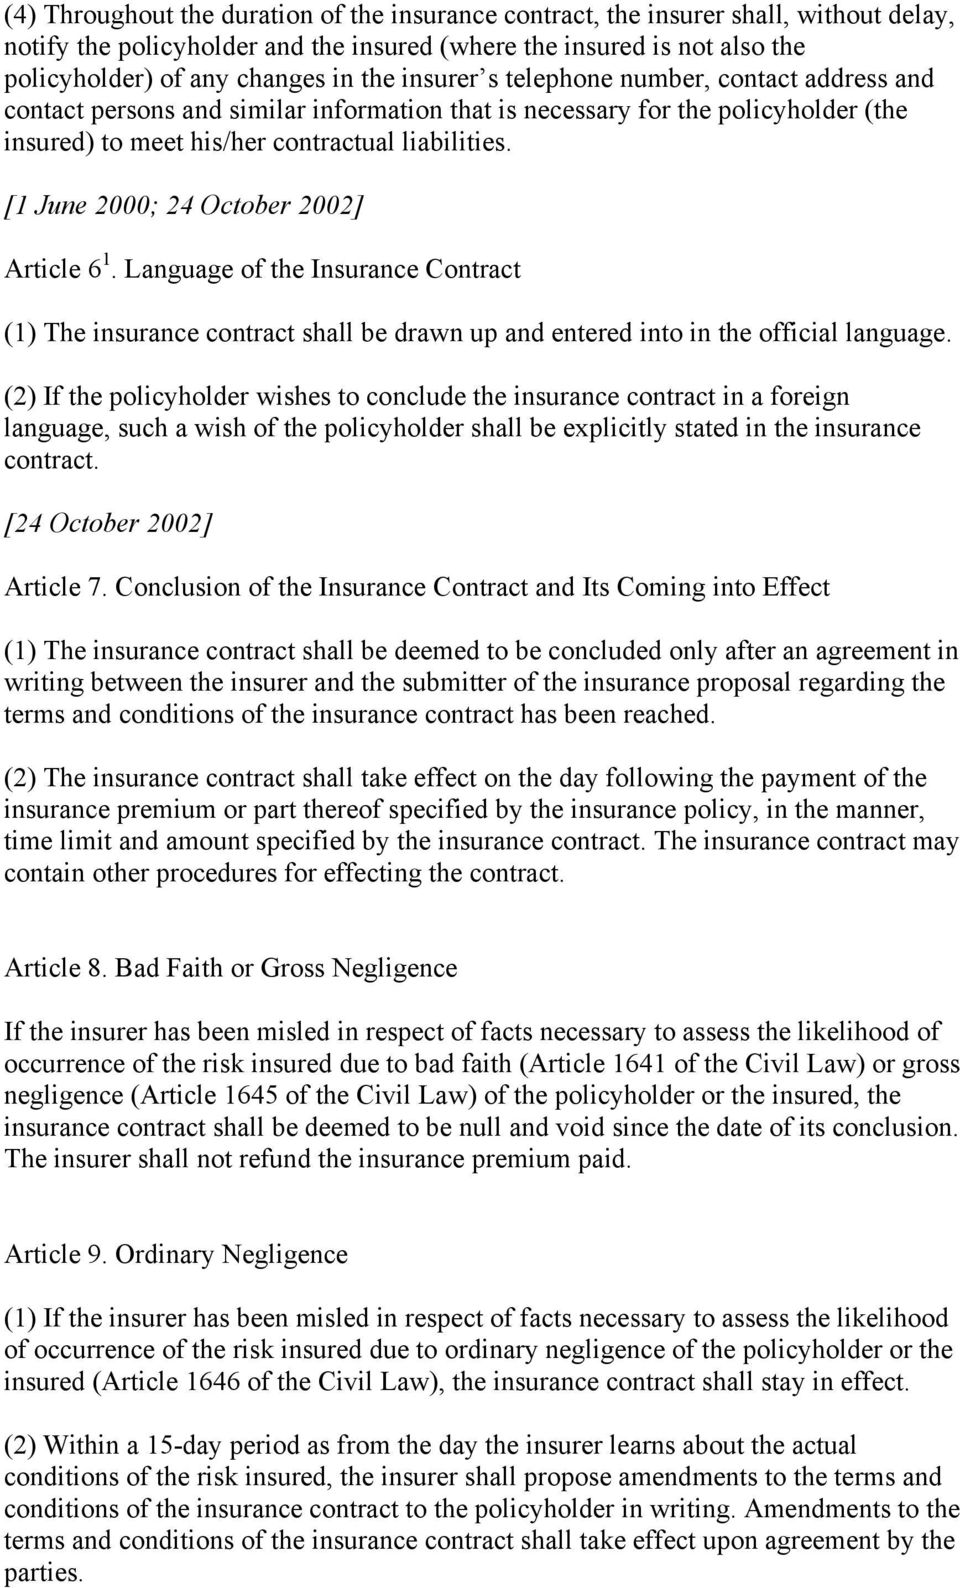 [1 June 2000; 24 October 2002] Article 6 1. Language of the Insurance Contract (1) The insurance contract shall be drawn up and entered into in the official language.